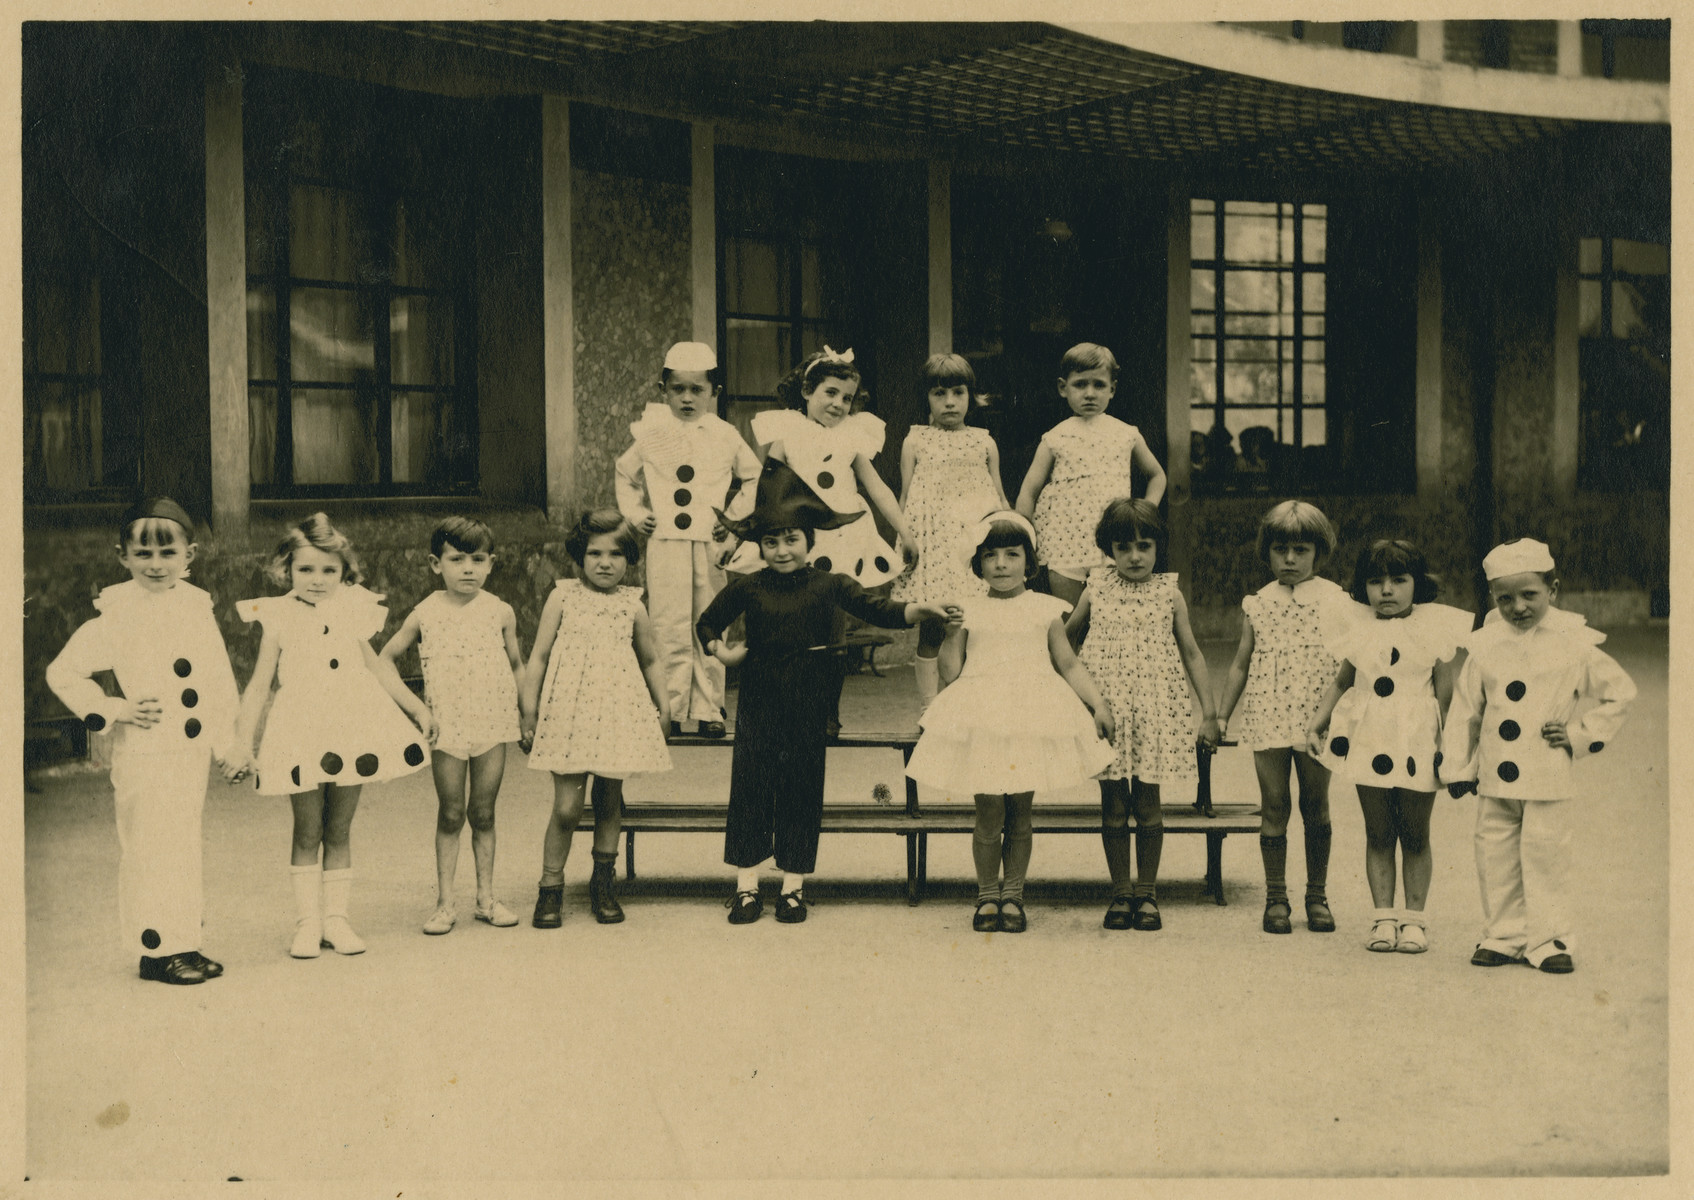 Girls from the elementary school rue Egene Reisz perform in costume.  Lucie Zonendlich is pictured second from the right in the first row.